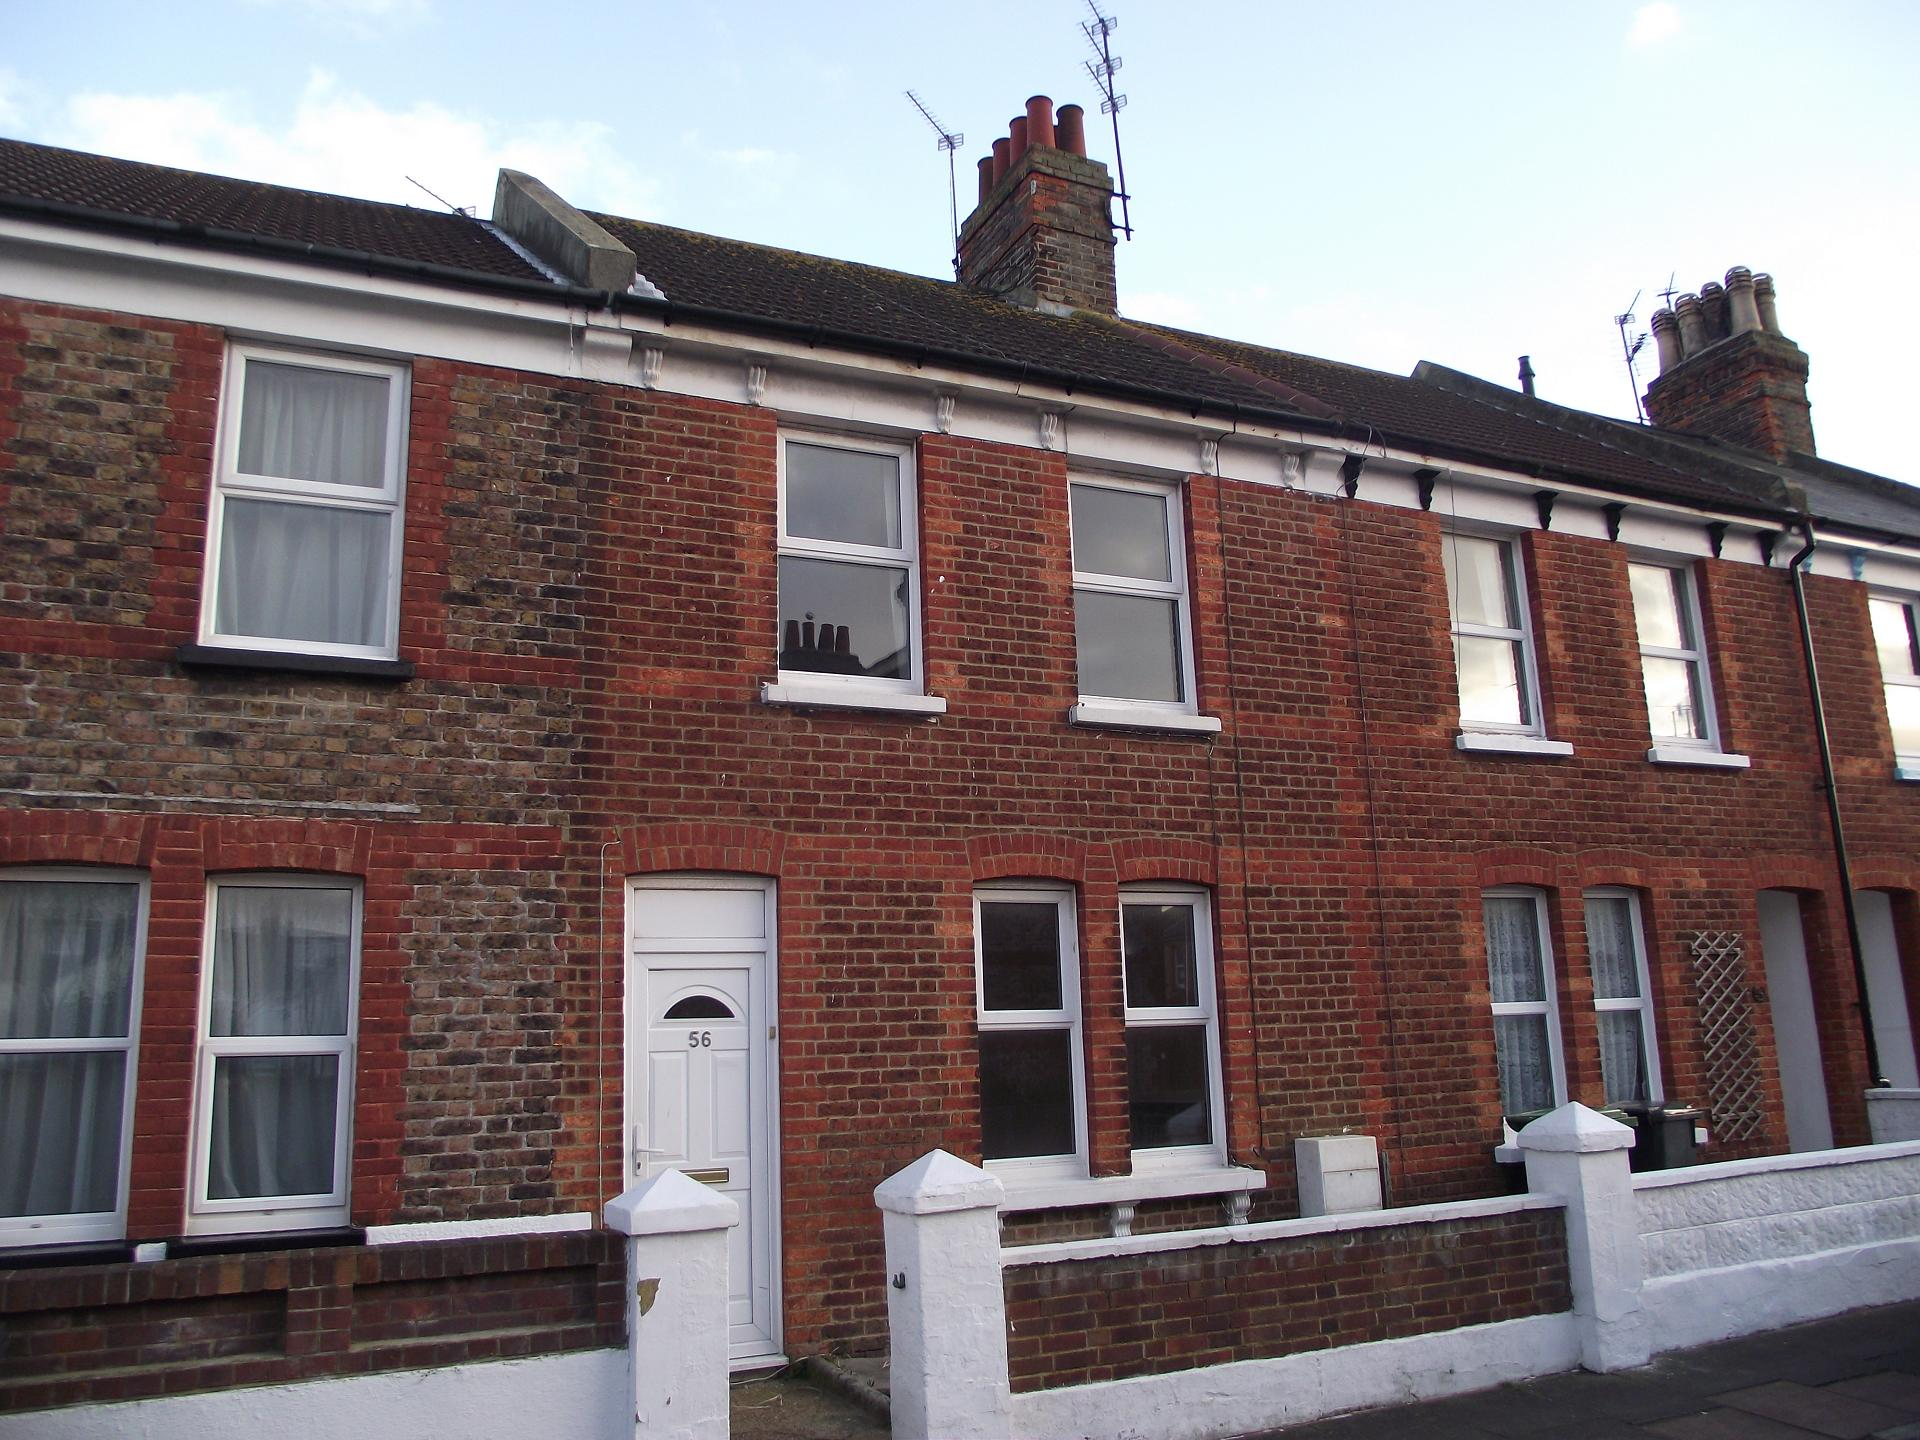 2 bedroom terrace for sale in redoubt northwood eastbourne for 50 eastbourne terrace